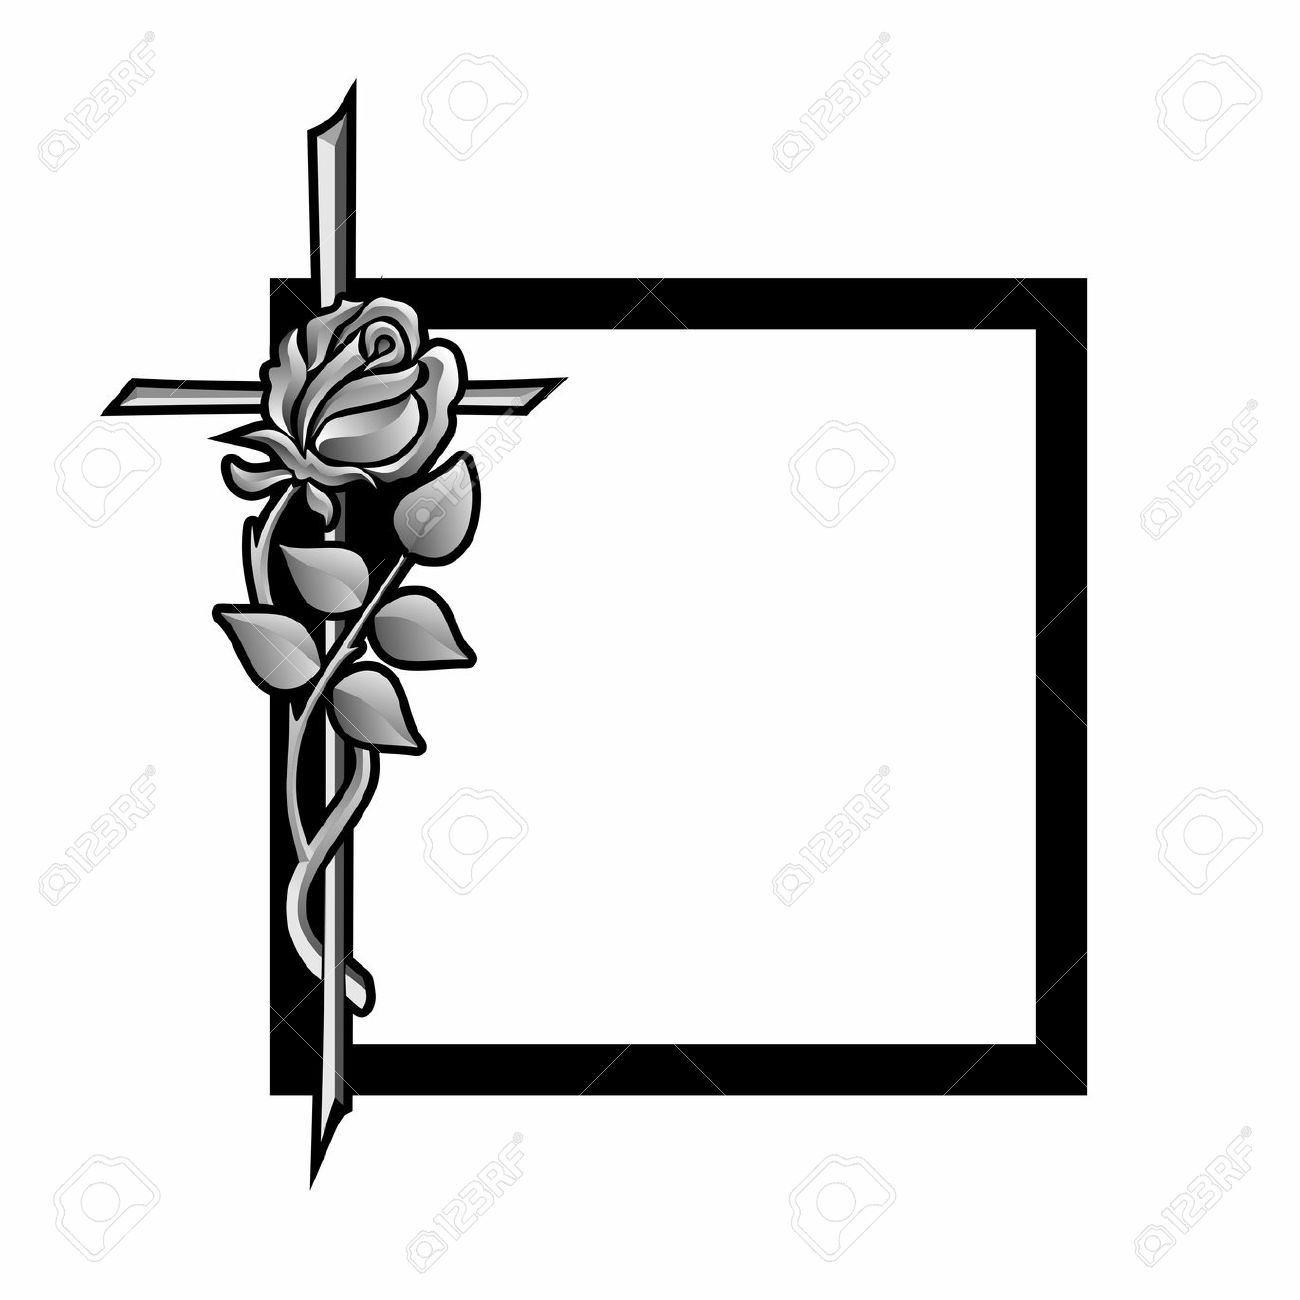 Funeral Background Stock Photos Royalty Free Funeral Background Images